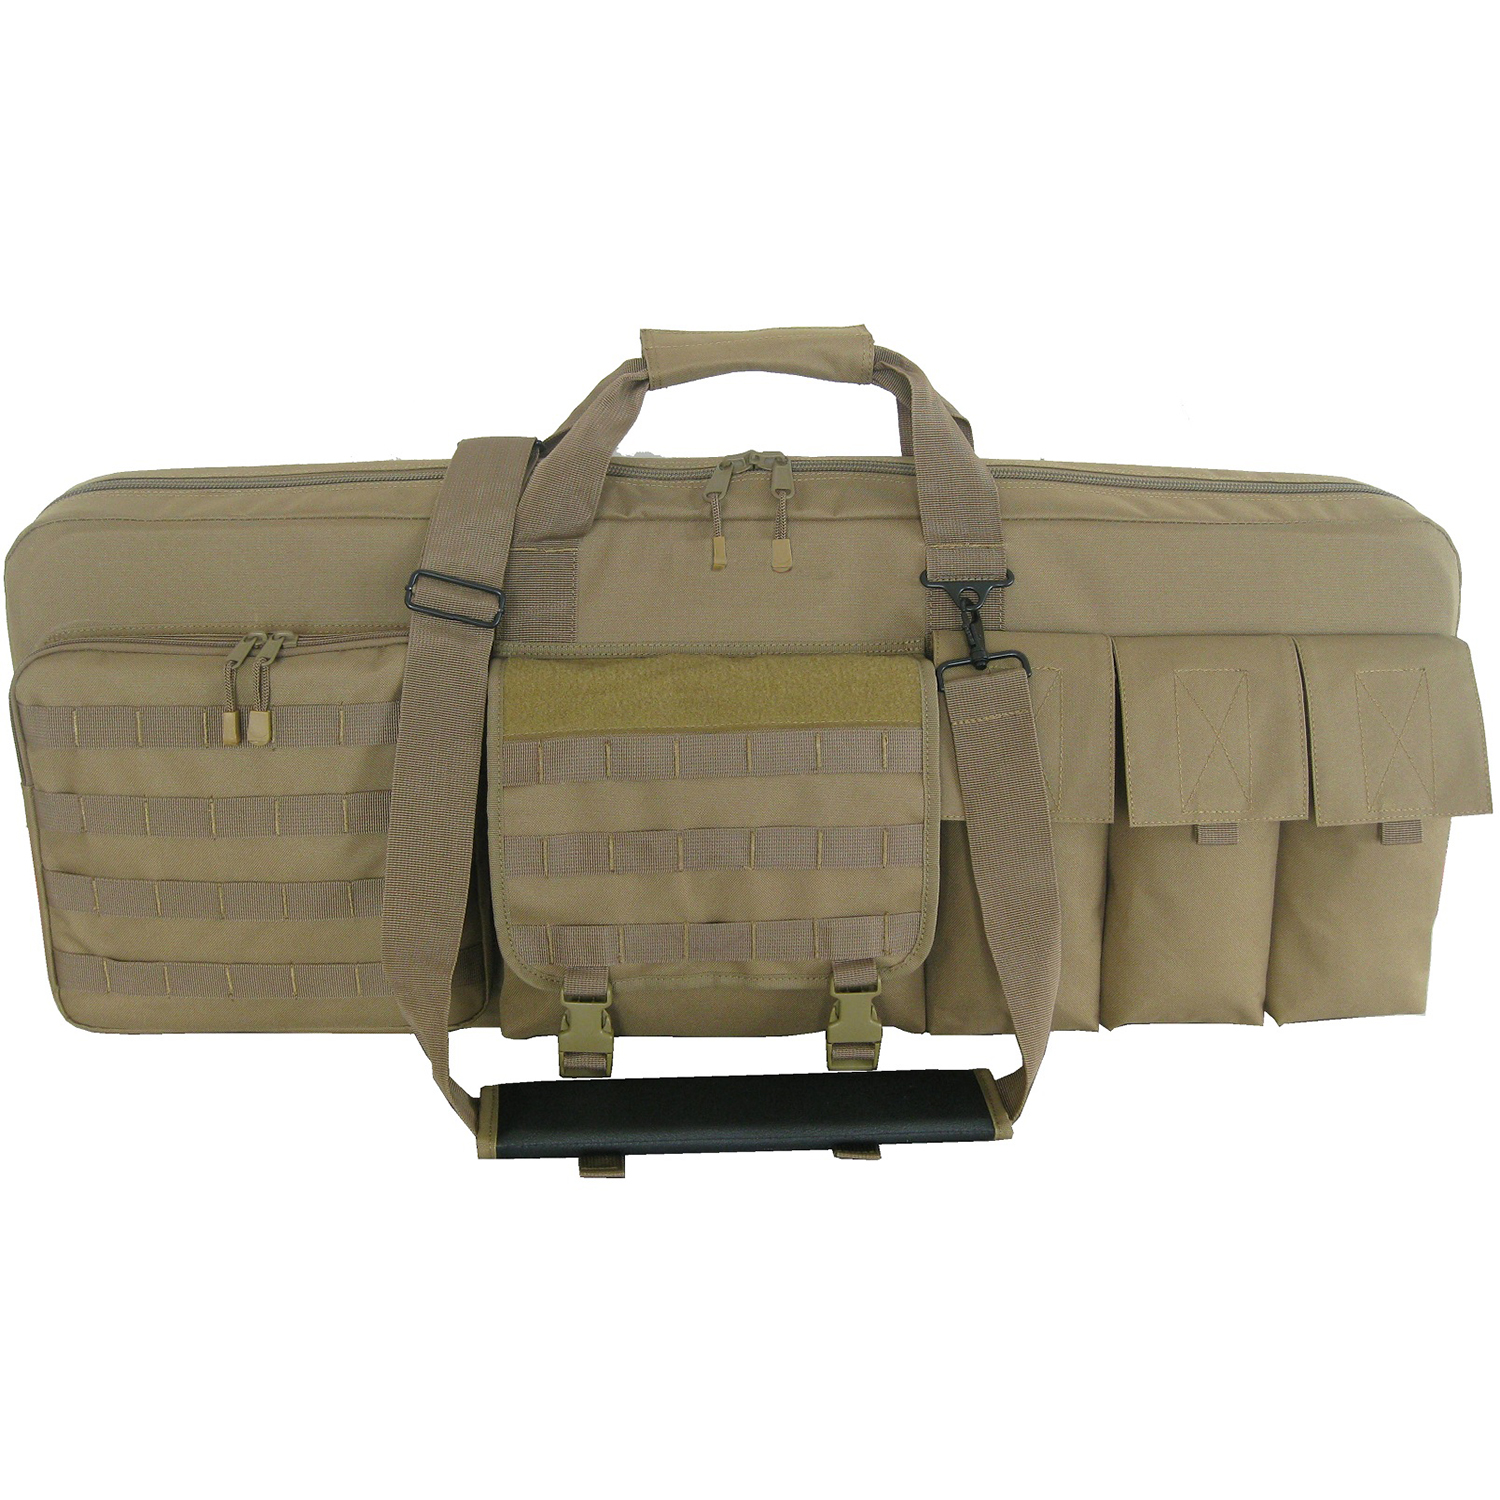 "Every Day Carry 46"" Triple Rifle Soft Case with Detachable Extension Mat"